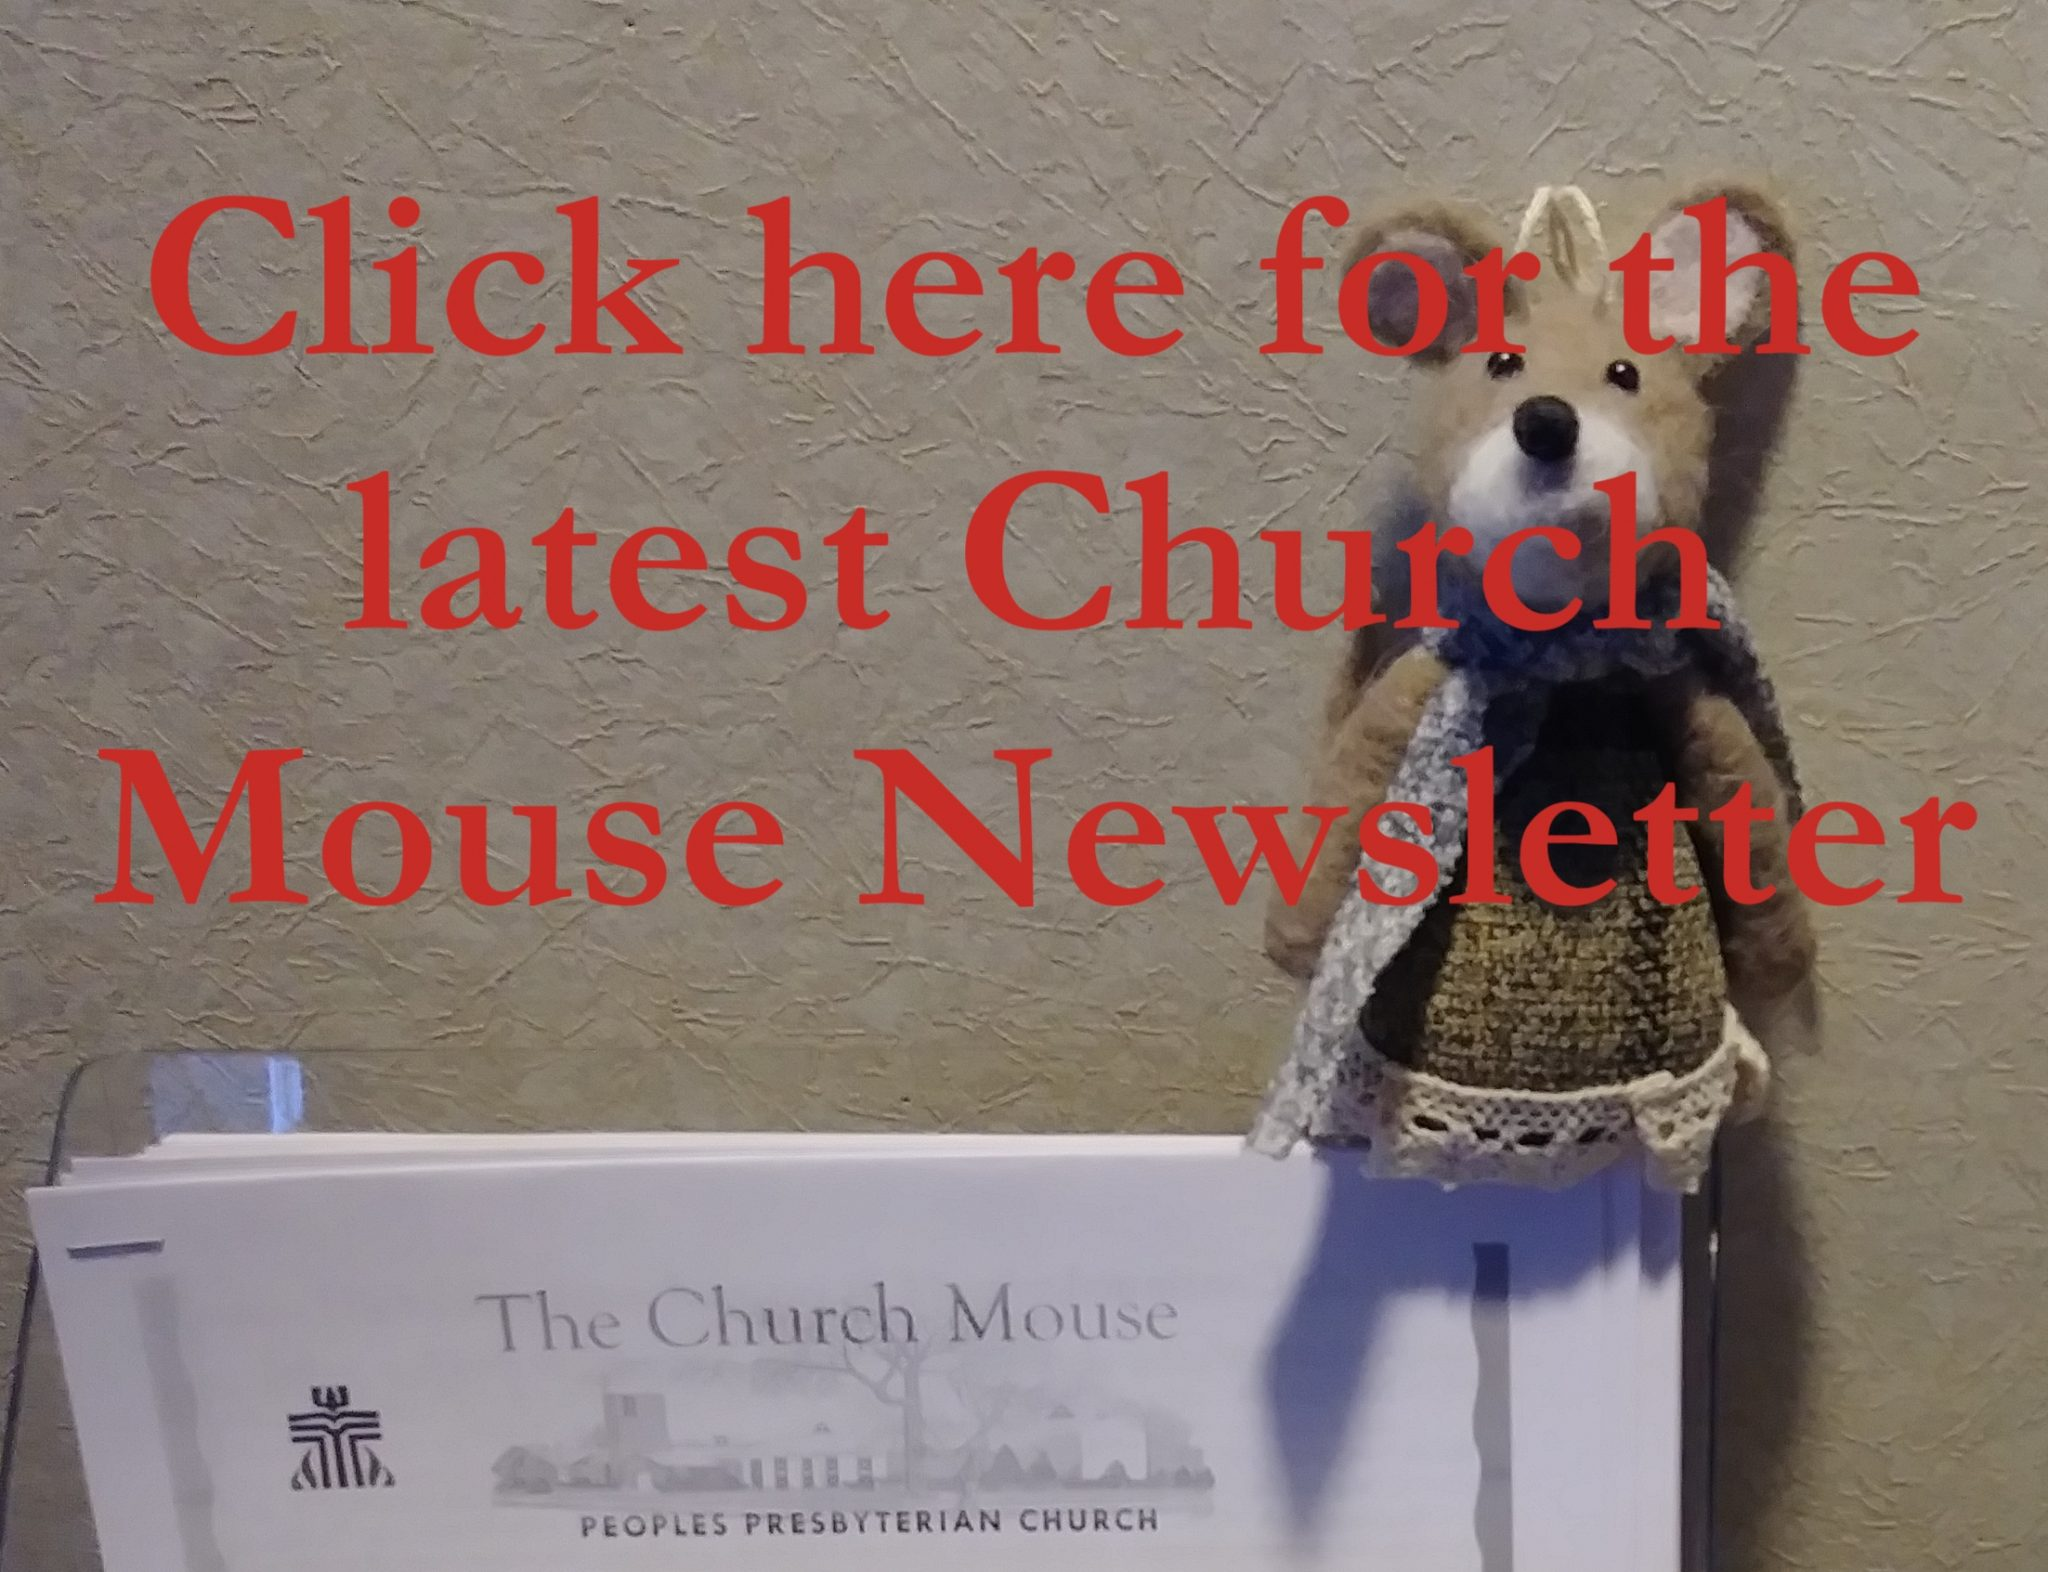 The Church Mouse Newsletter